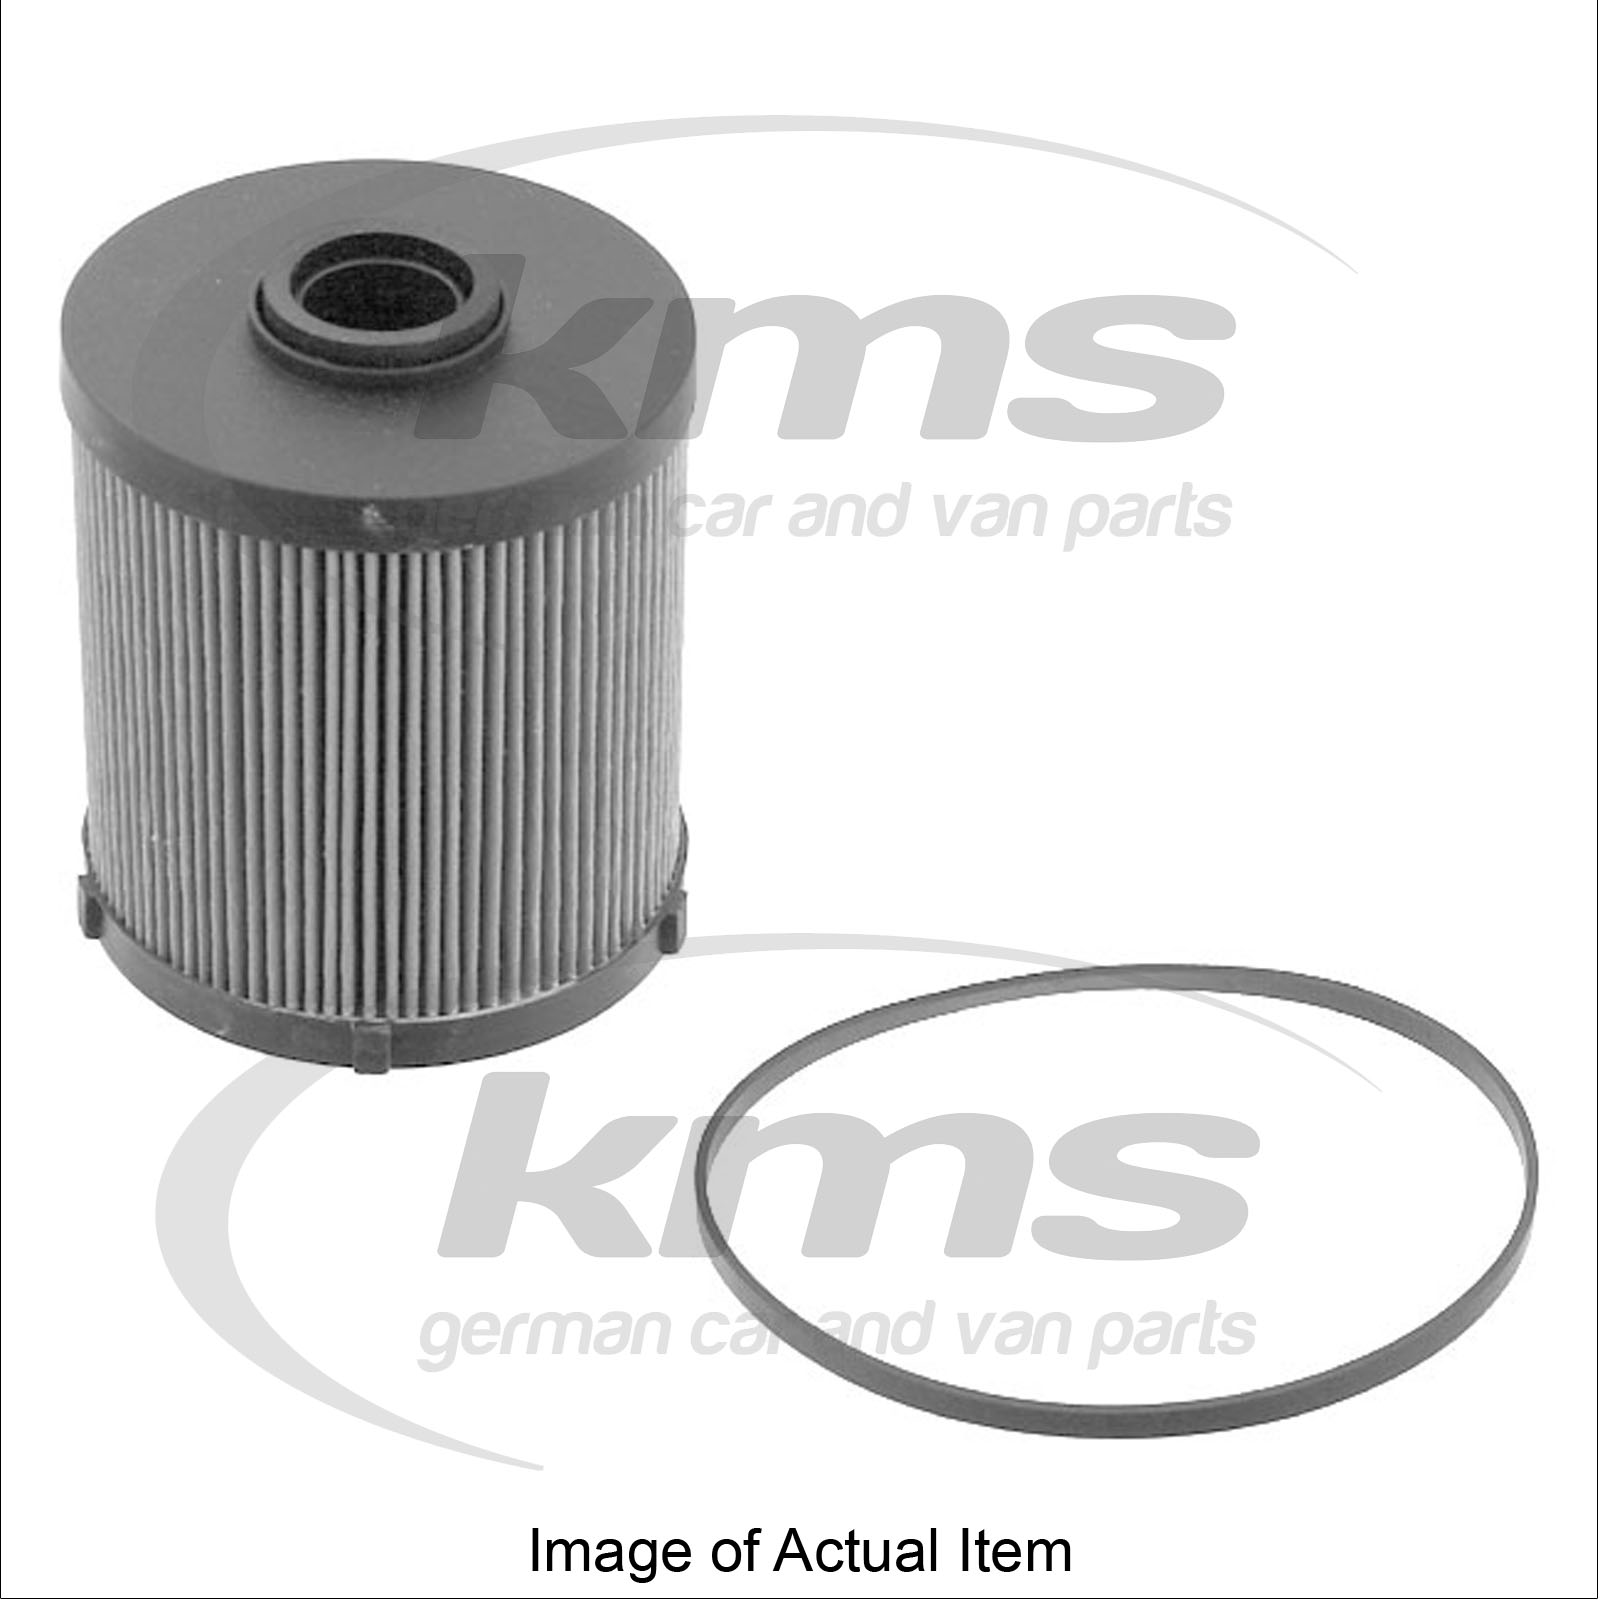 Fuel filter mercedes benz e class saloon e270cdi w211 2 7l for Mercedes benz fuel filter